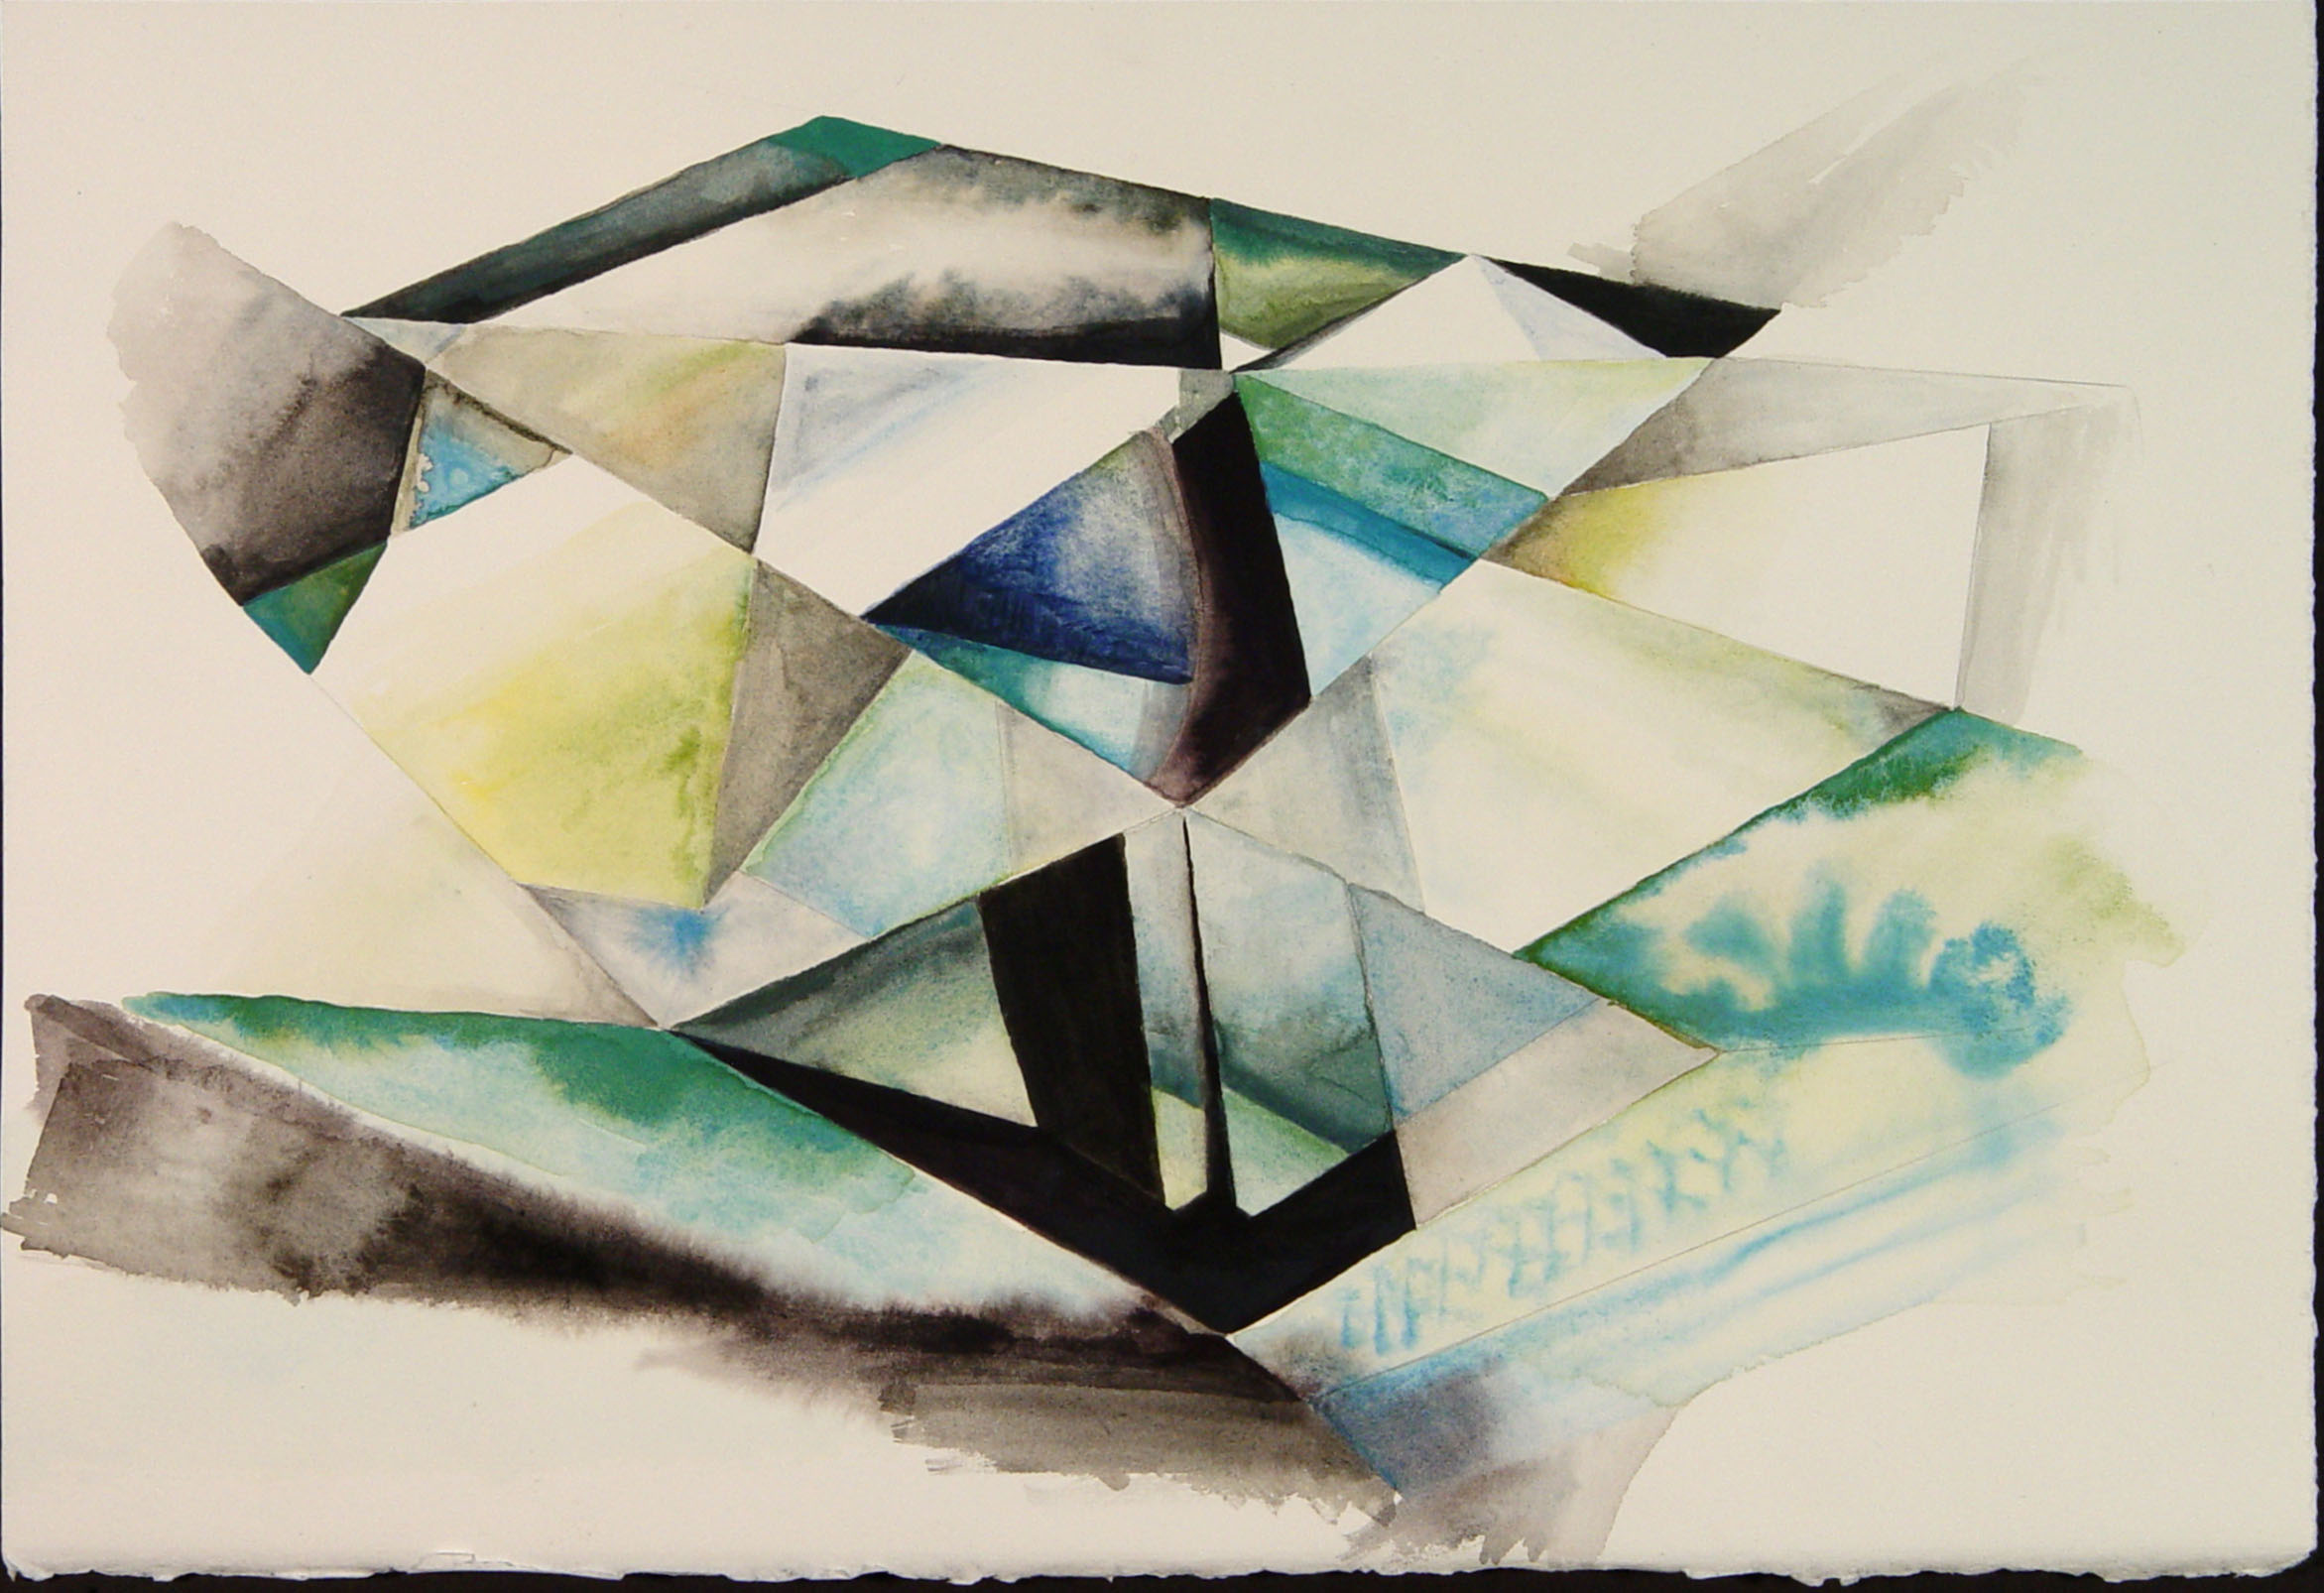 A painting of intersecting planes and angles.